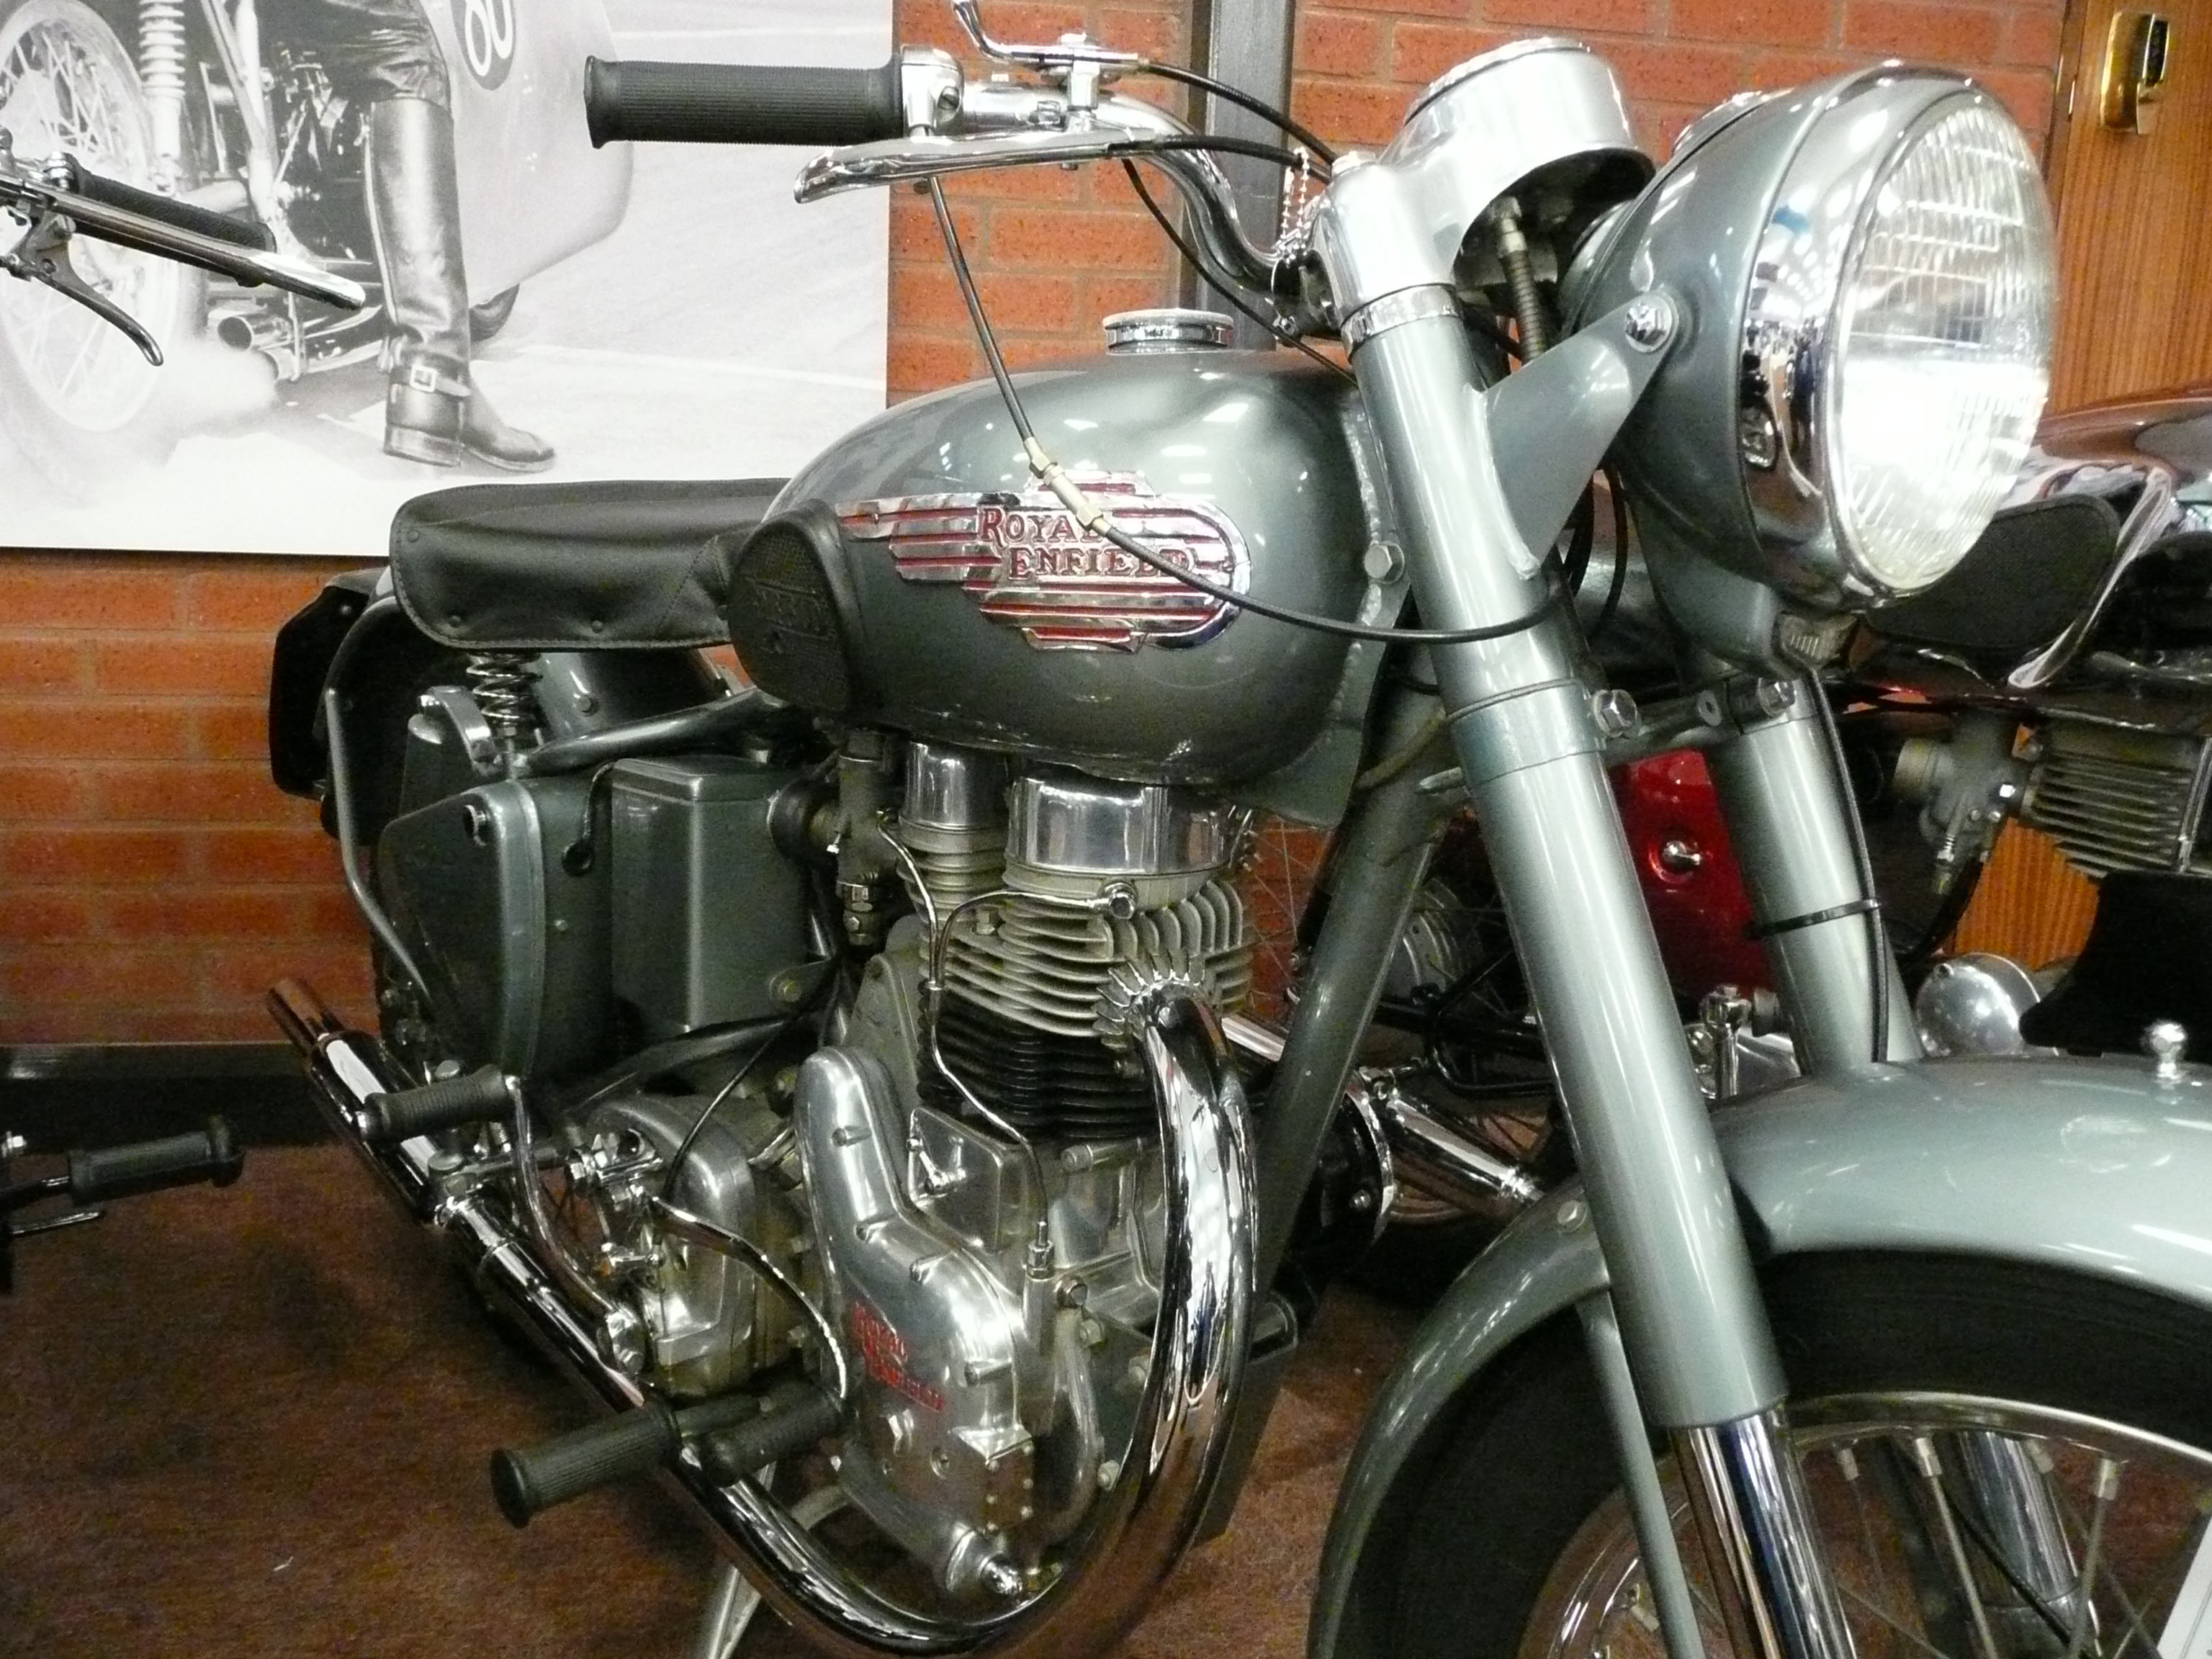 Royal Enfield Bullet 350 Classic 2007 images #123977